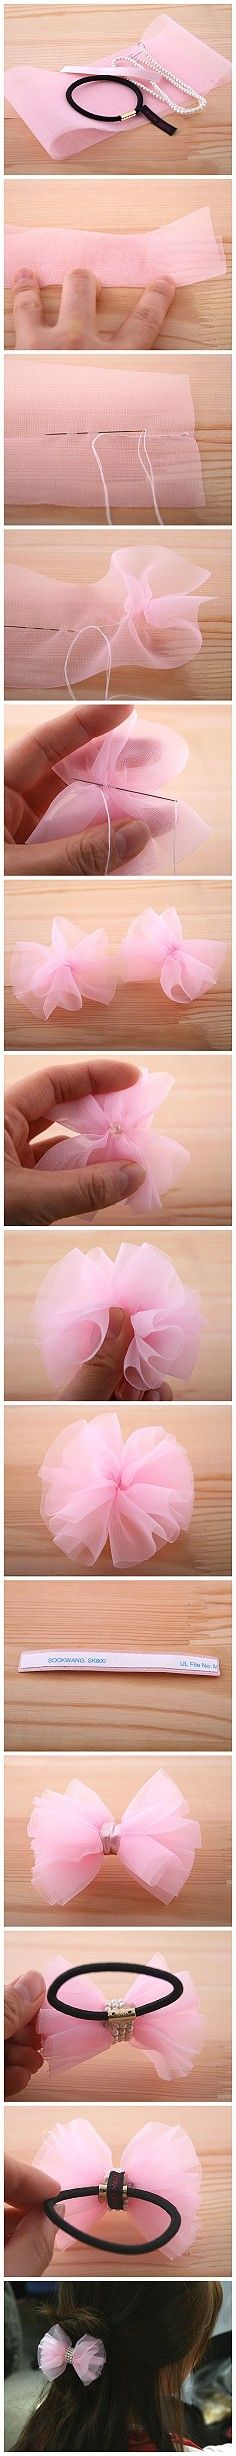 DIY Hair Bow diy crafts craft ideas easy crafts diy ideas crafty easy diy craft jewelry diy bow jewelry diy diy accesories Discover thousands of images about Retail Newborn Mini Felt Crown+Glitter Elastic Headband For Girls Hair Accessories Handmade Making Hair Bows, Diy Hair Bows, Ribbon Crafts, Ribbon Bows, Ribbons, Ribbon Flower, Ribbon Hair, Tulle Bows, Diy Headband